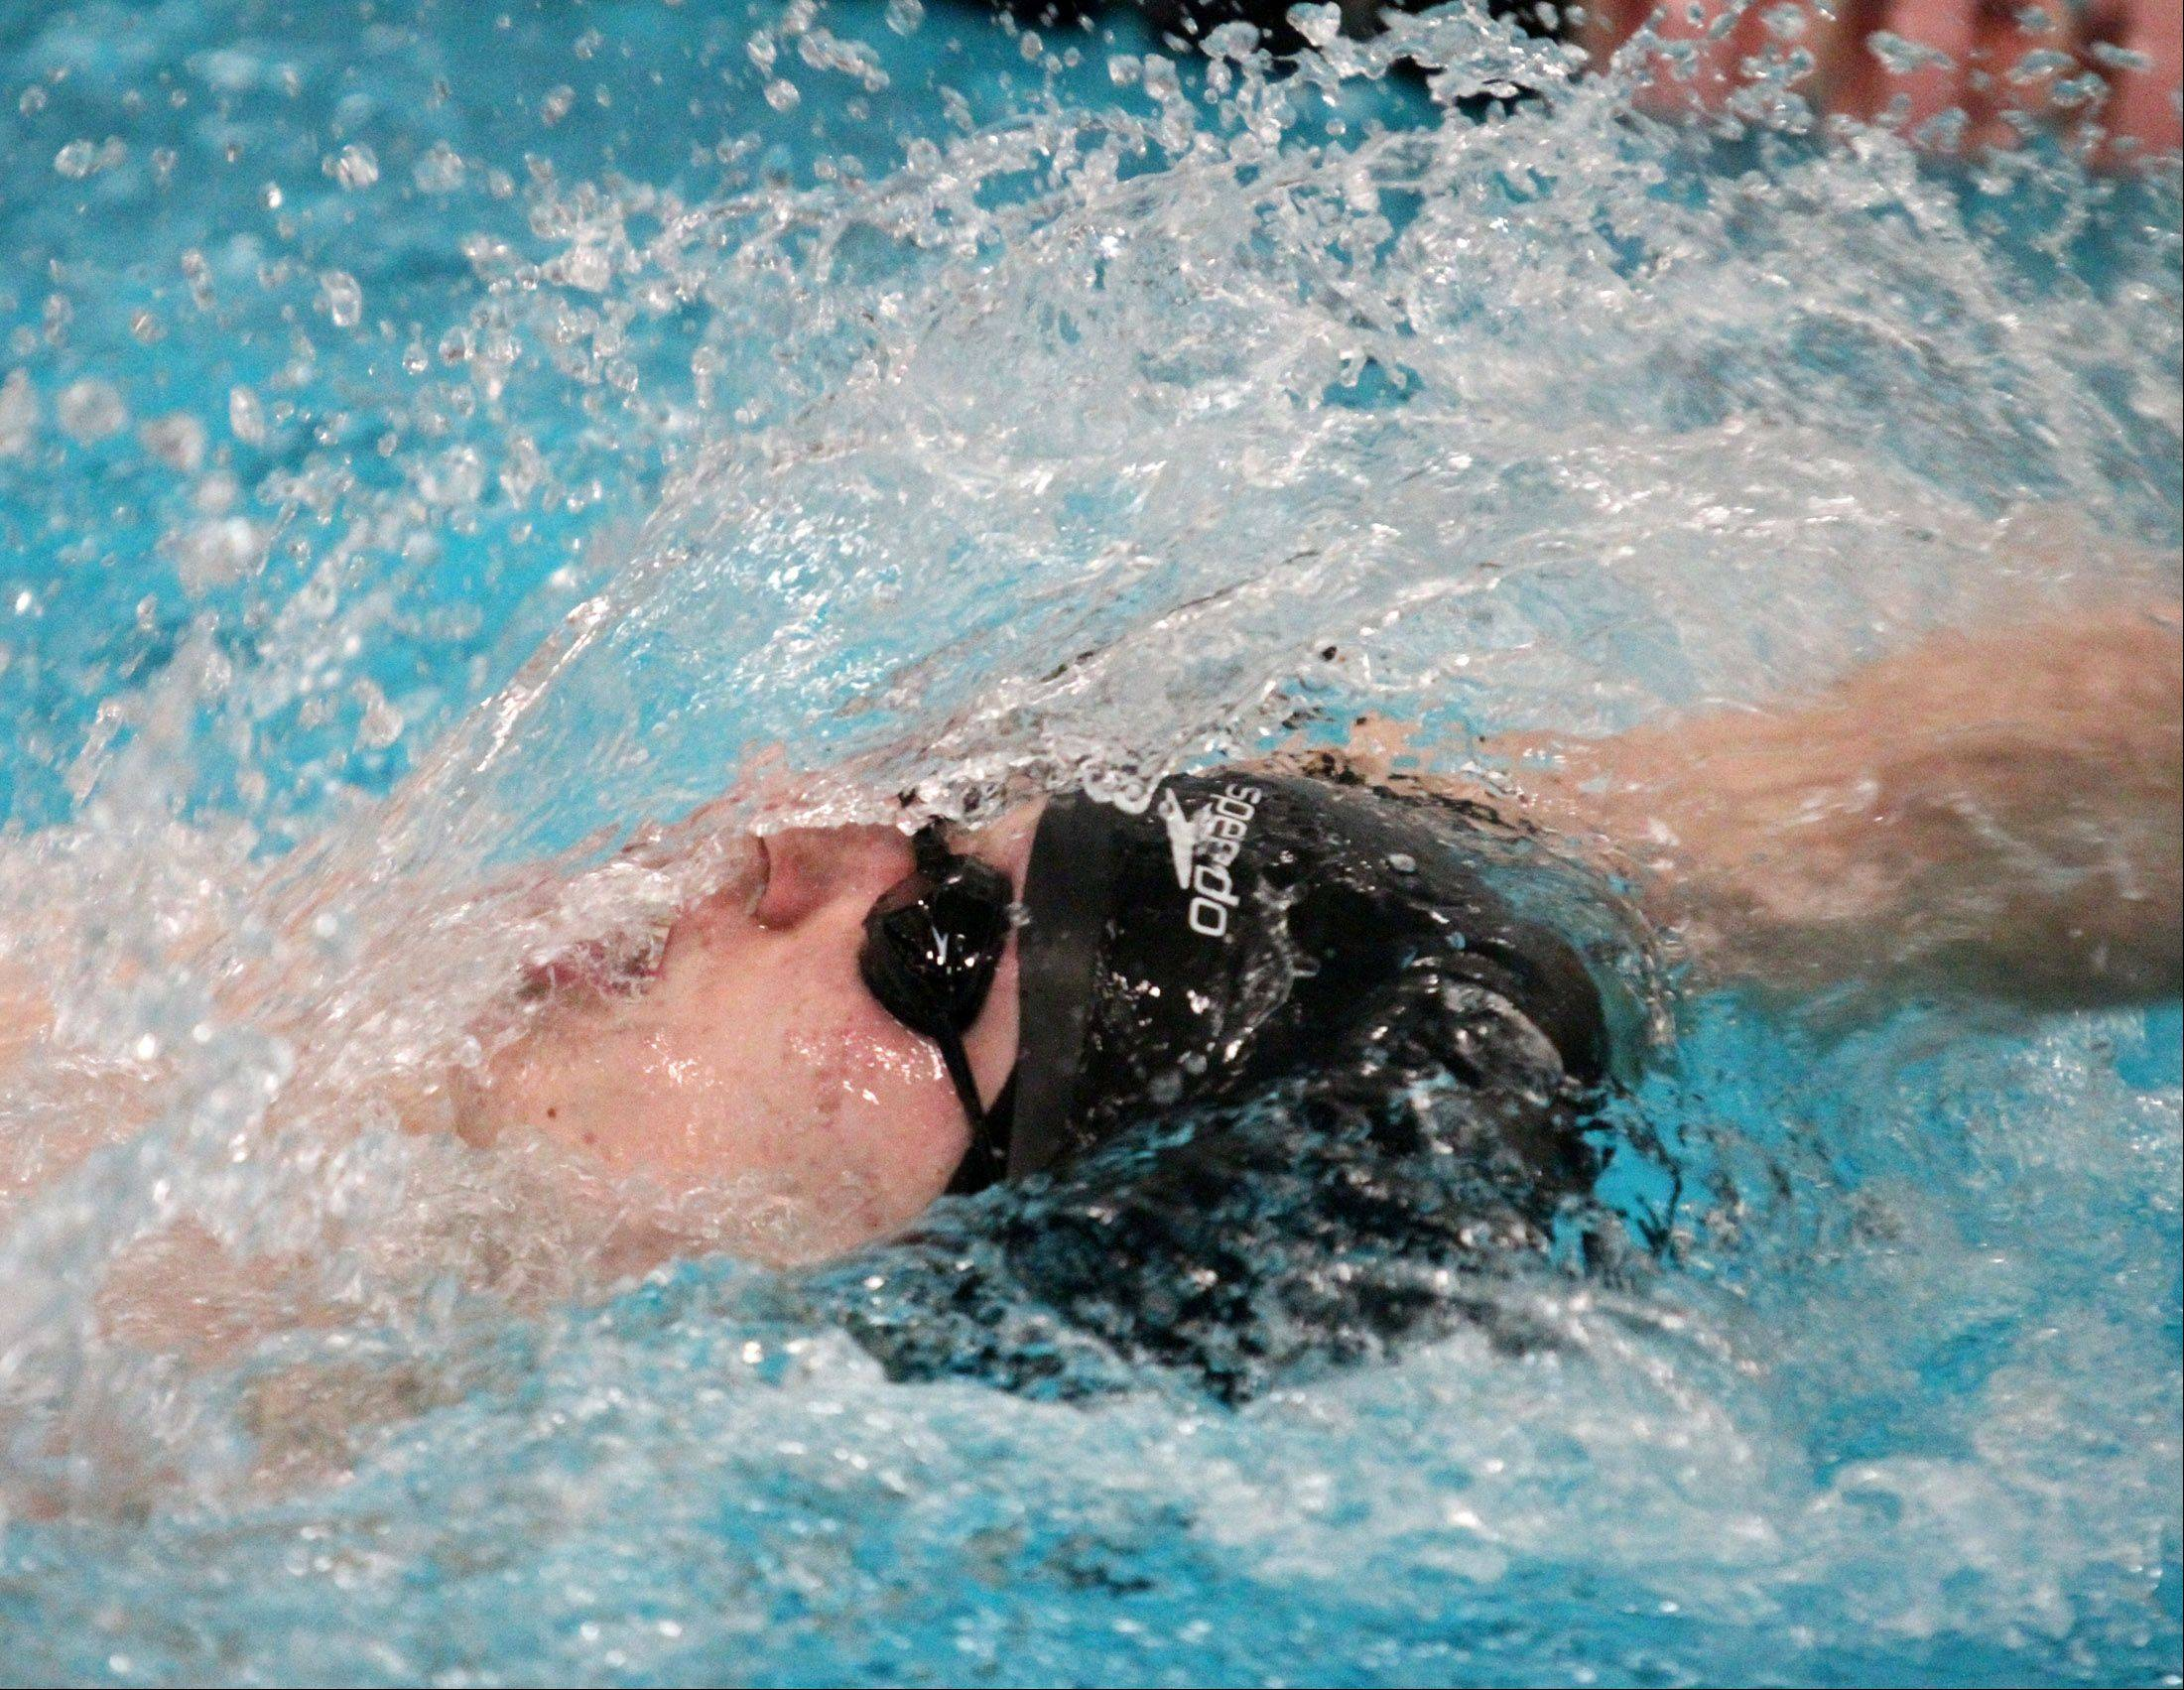 South Elgin's Alex Duffy placed second in the 200-yard individual melody at the sectional swim meet at St. Charles East on Saturday.